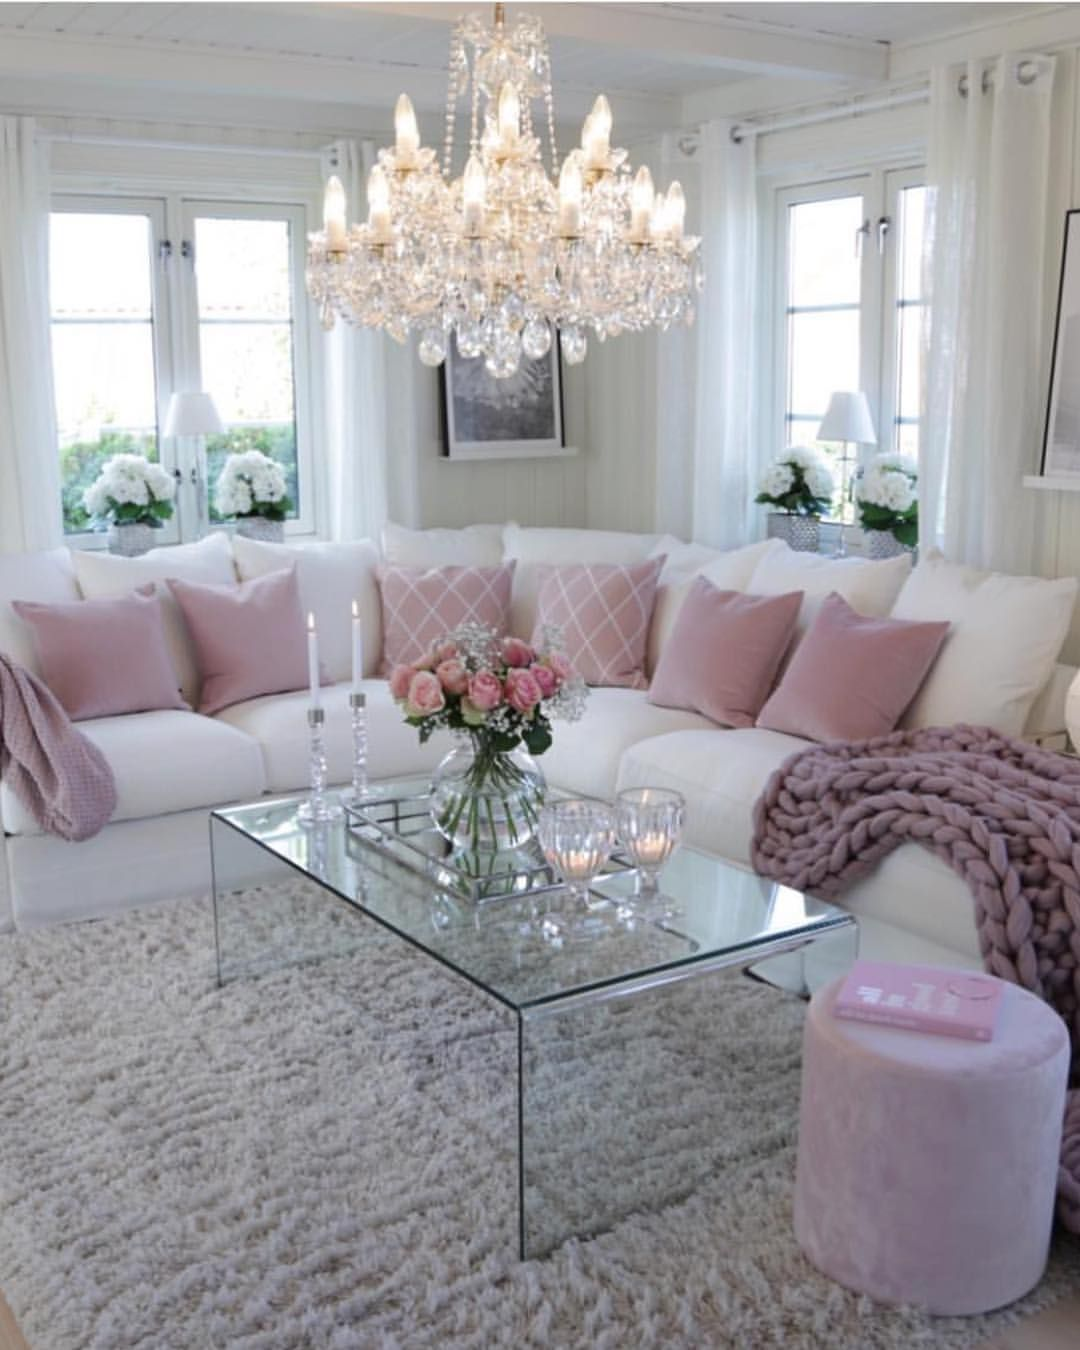 Instagram Da Interior Decor Inspiration Lovely Friday To All Tag A Friend Who Would Romantic Living Room Pink Living Room Living Room Inspiration Romantic living room decor